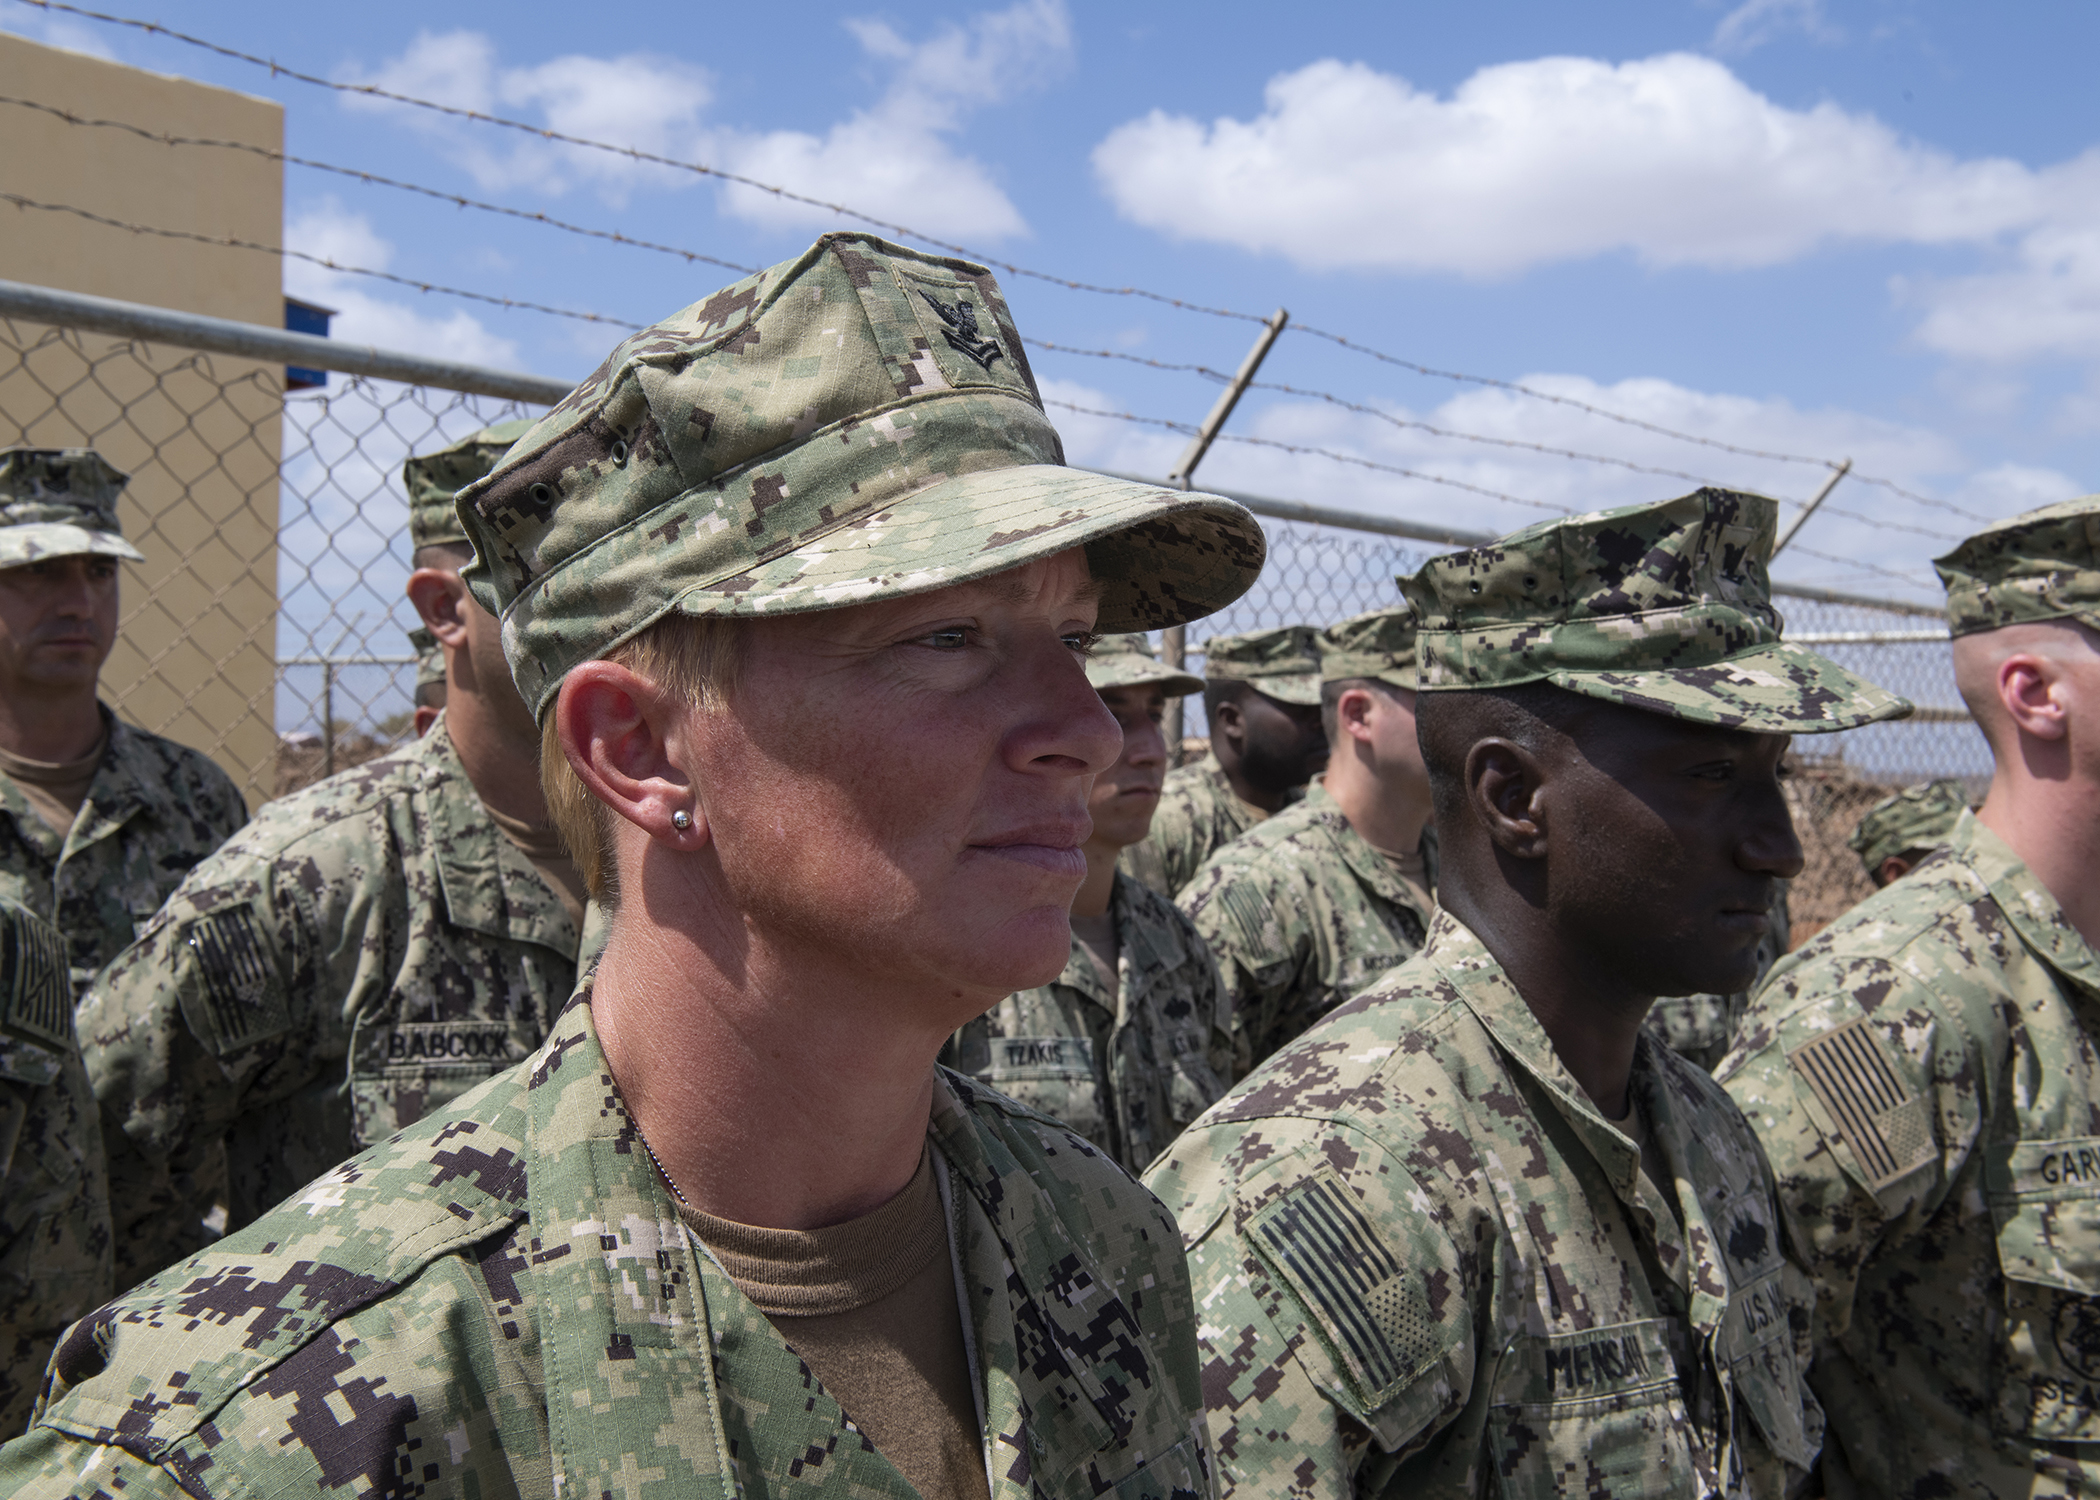 U.S. Navy Petty Officer 1st Class Carroll Bennett, a Seabee from Naval Mobile Construction Battalion 1, assigned to Combined Joint Task Force-Horn of Africa, stands in formation during the Ali Oune Medical Clinic ribbon cutting ceremony in Ali Oune, Djibouti, Jan. 31, 2019. The clinic, which the Seabees have worked on for five months, is intended to enhance the Ministry of Health for Djibouti's ability to provide basic medical, birth and after care to the Ali Oune village and its more than 1,000 residents and rural neighbors. (U.S. Air Force photo by Tech. Sgt. Shawn Nickel)